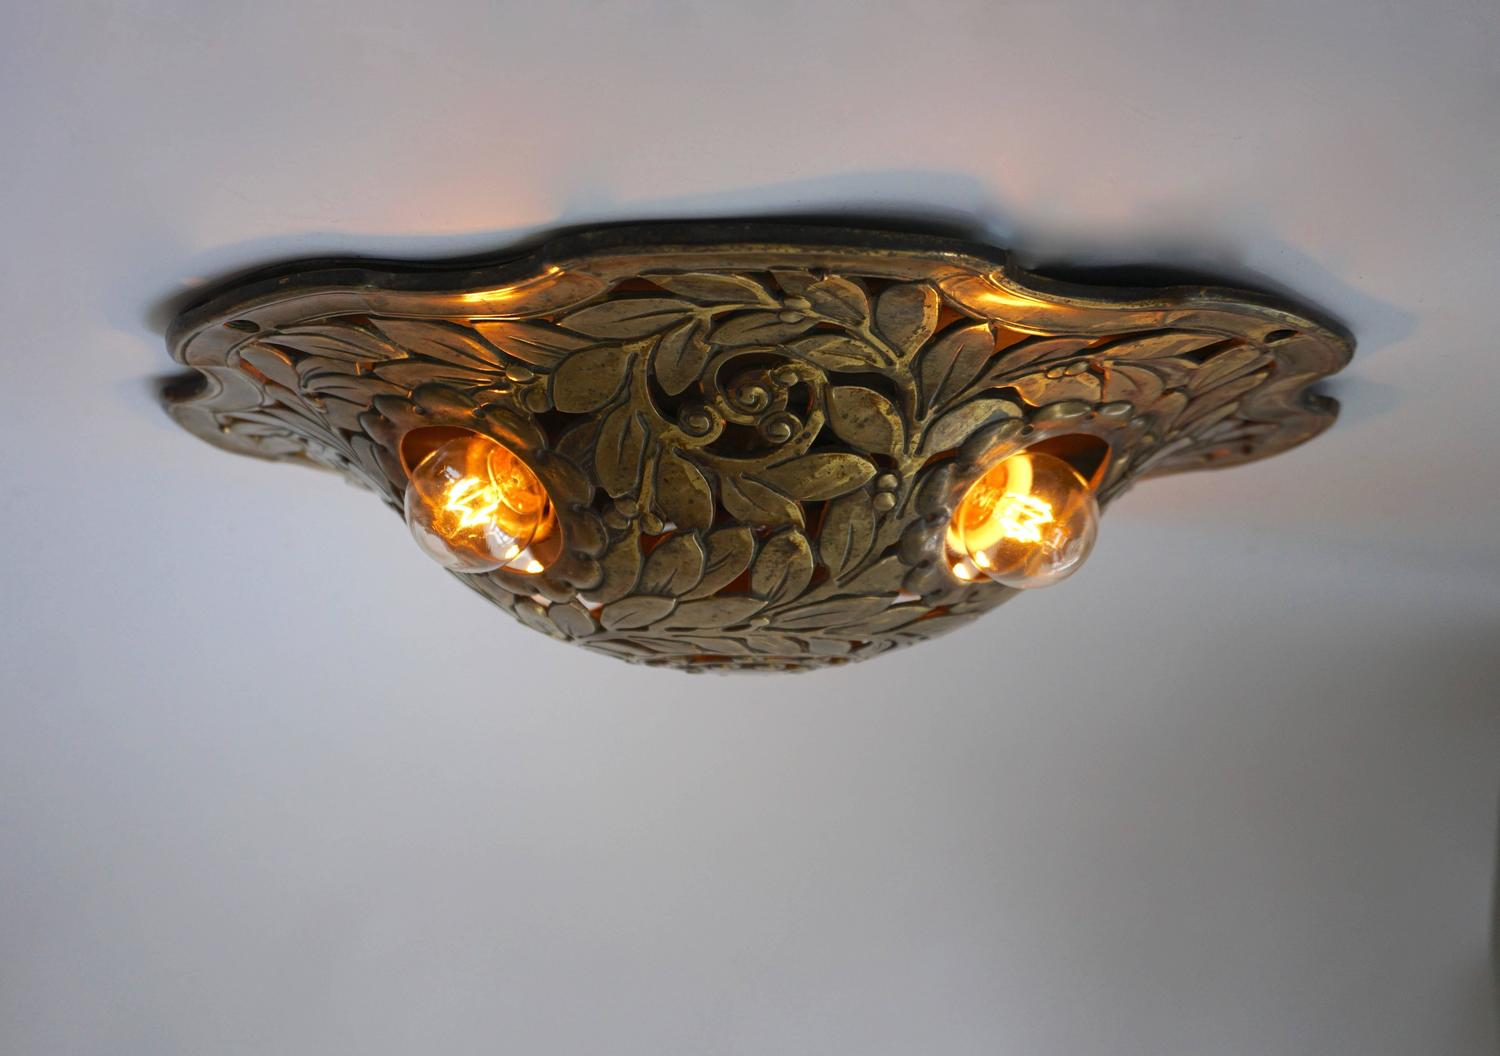 Wonderful Bronze Flush Mount or Wall Sconce For Sale at 1stdibs